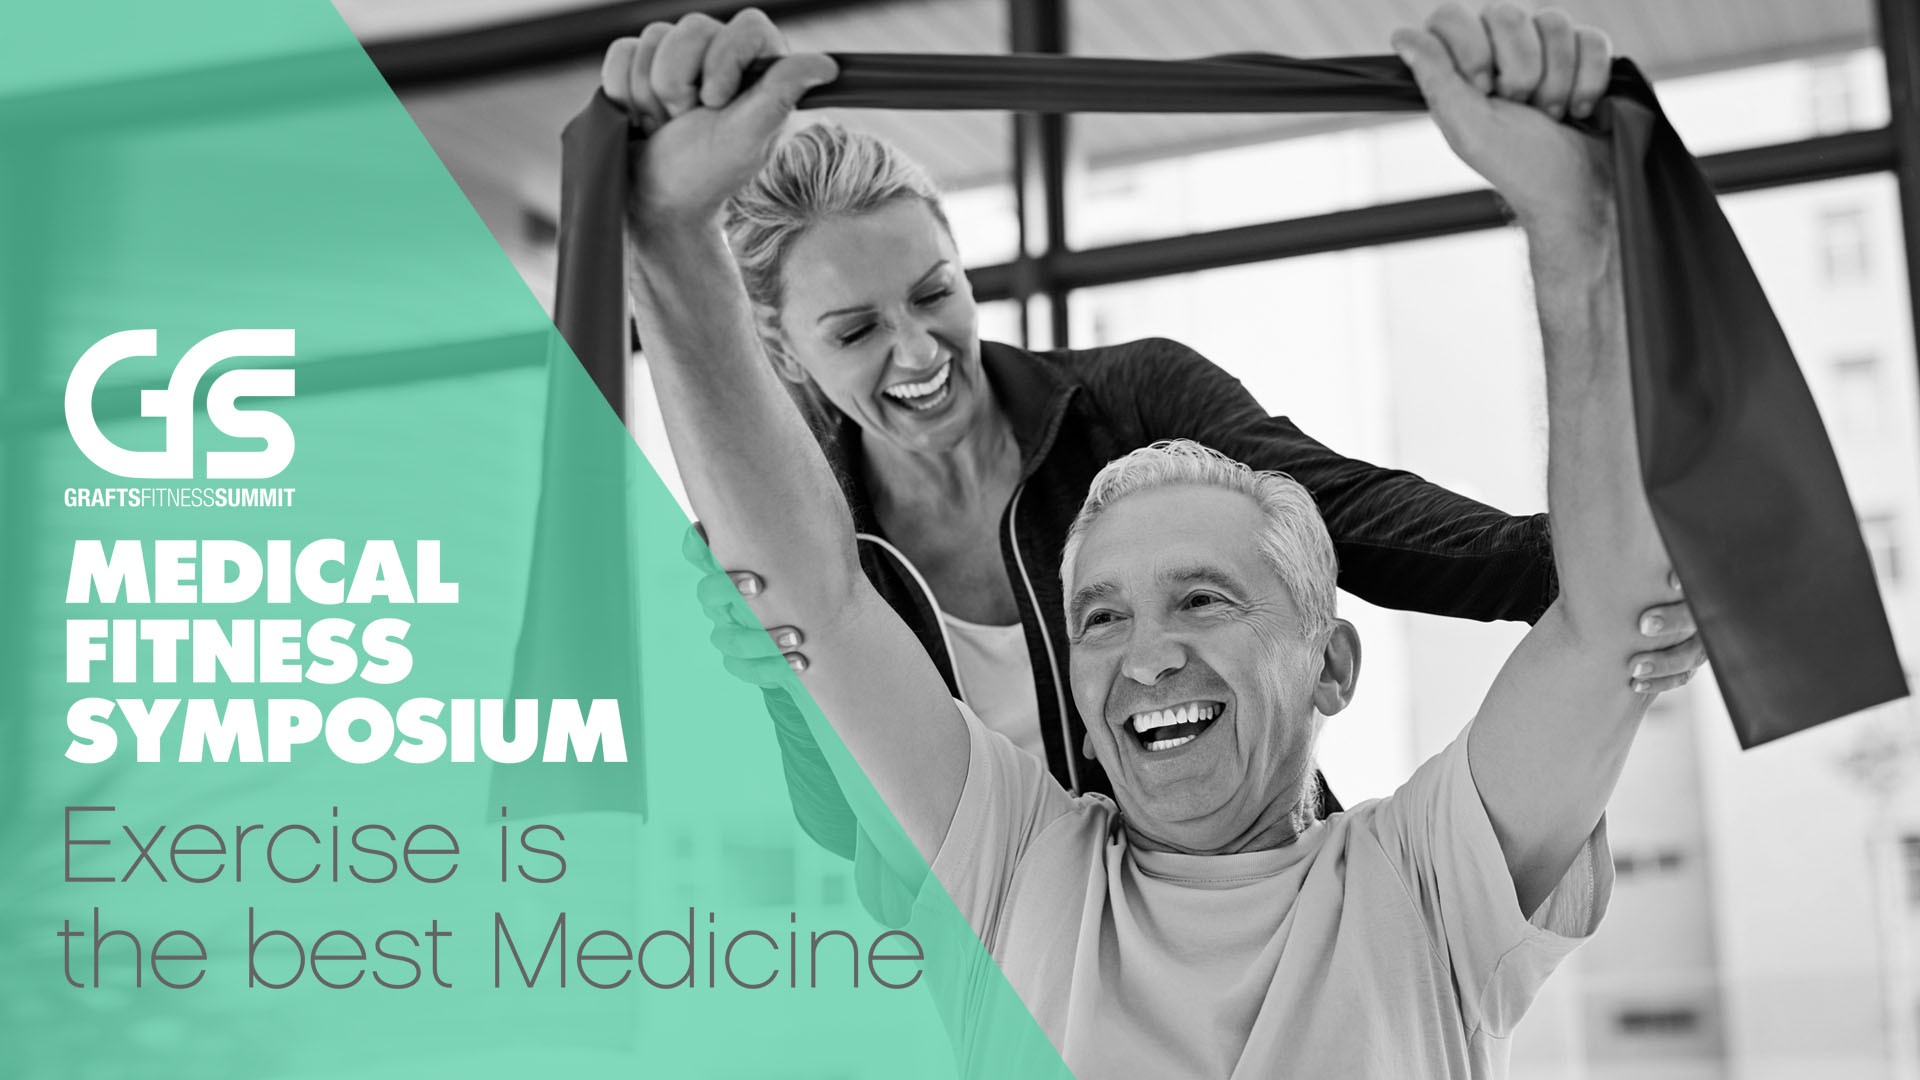 6th GRAFTS Fitness Summit - Medical Fitness Symposium banner